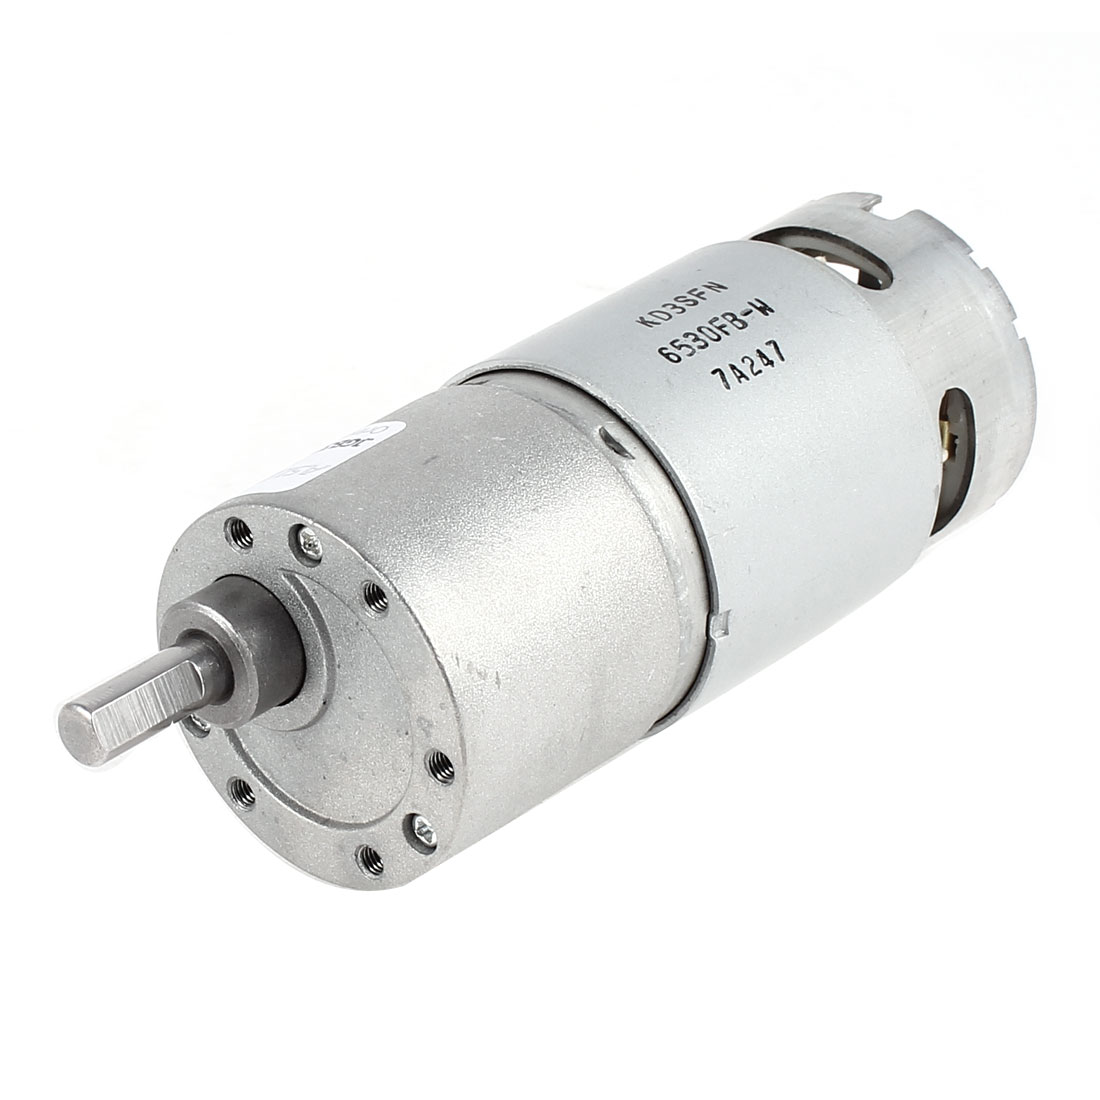 High Power DC 12V 32RPM 6mm Diameter Shaft Electric Gearbox Speed Reducing Motor